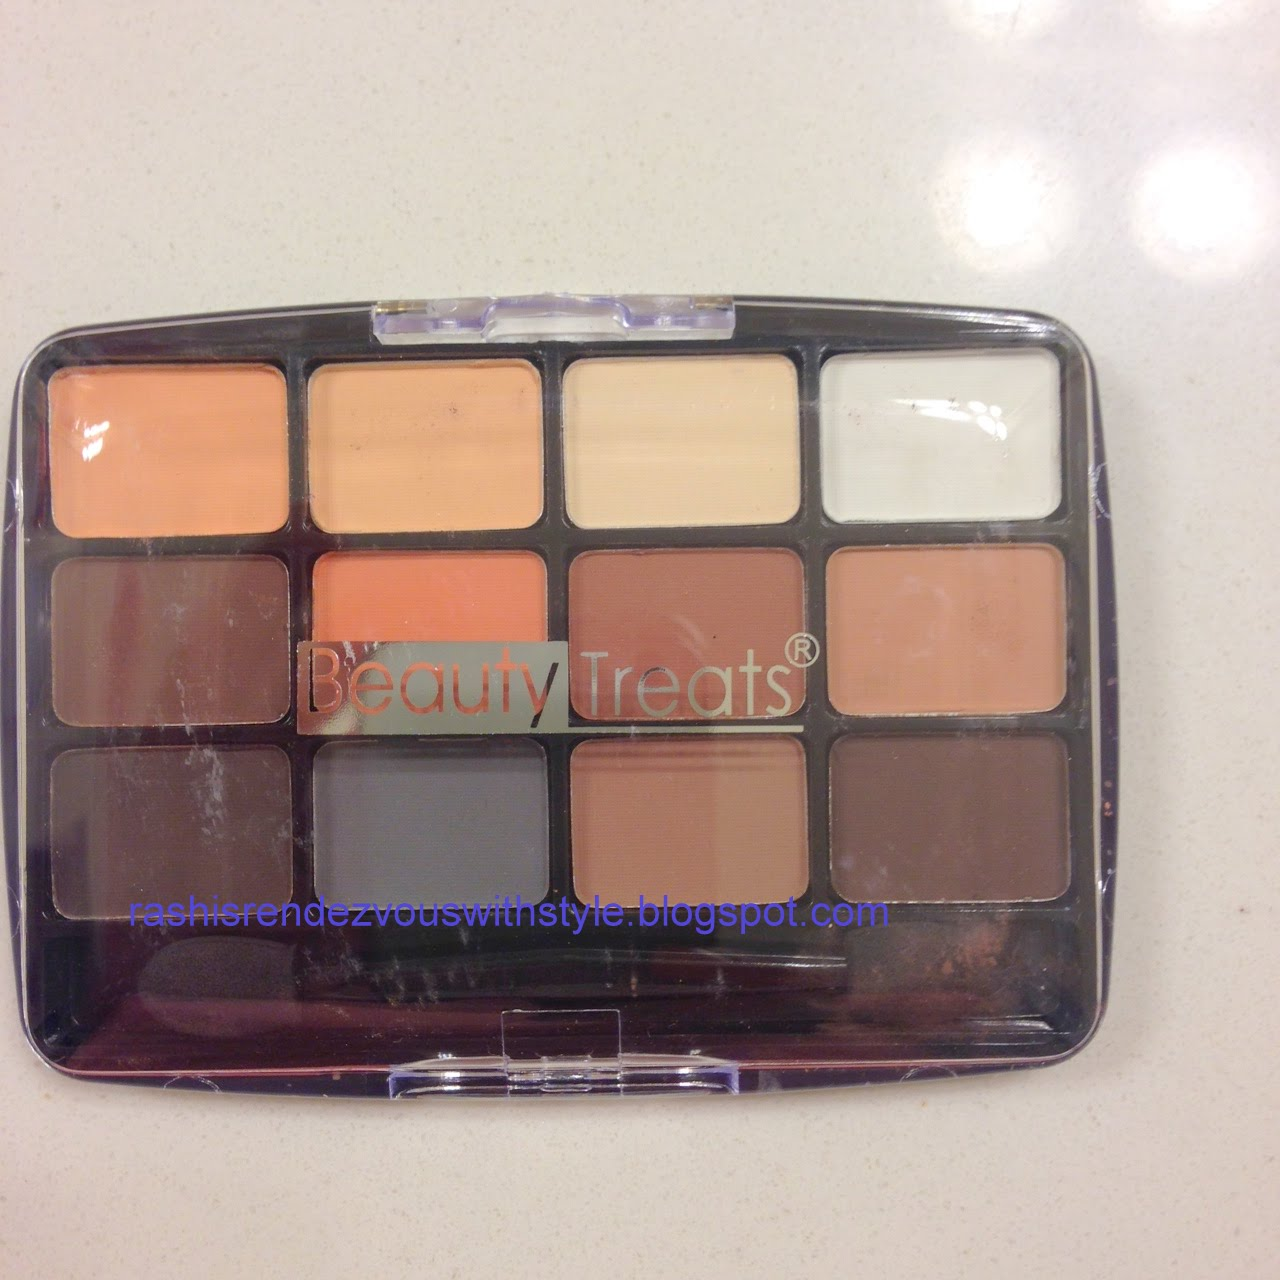 Rashi's Rendezvous With Style !!: Viseart Neutral Matte Eyeshadow ...